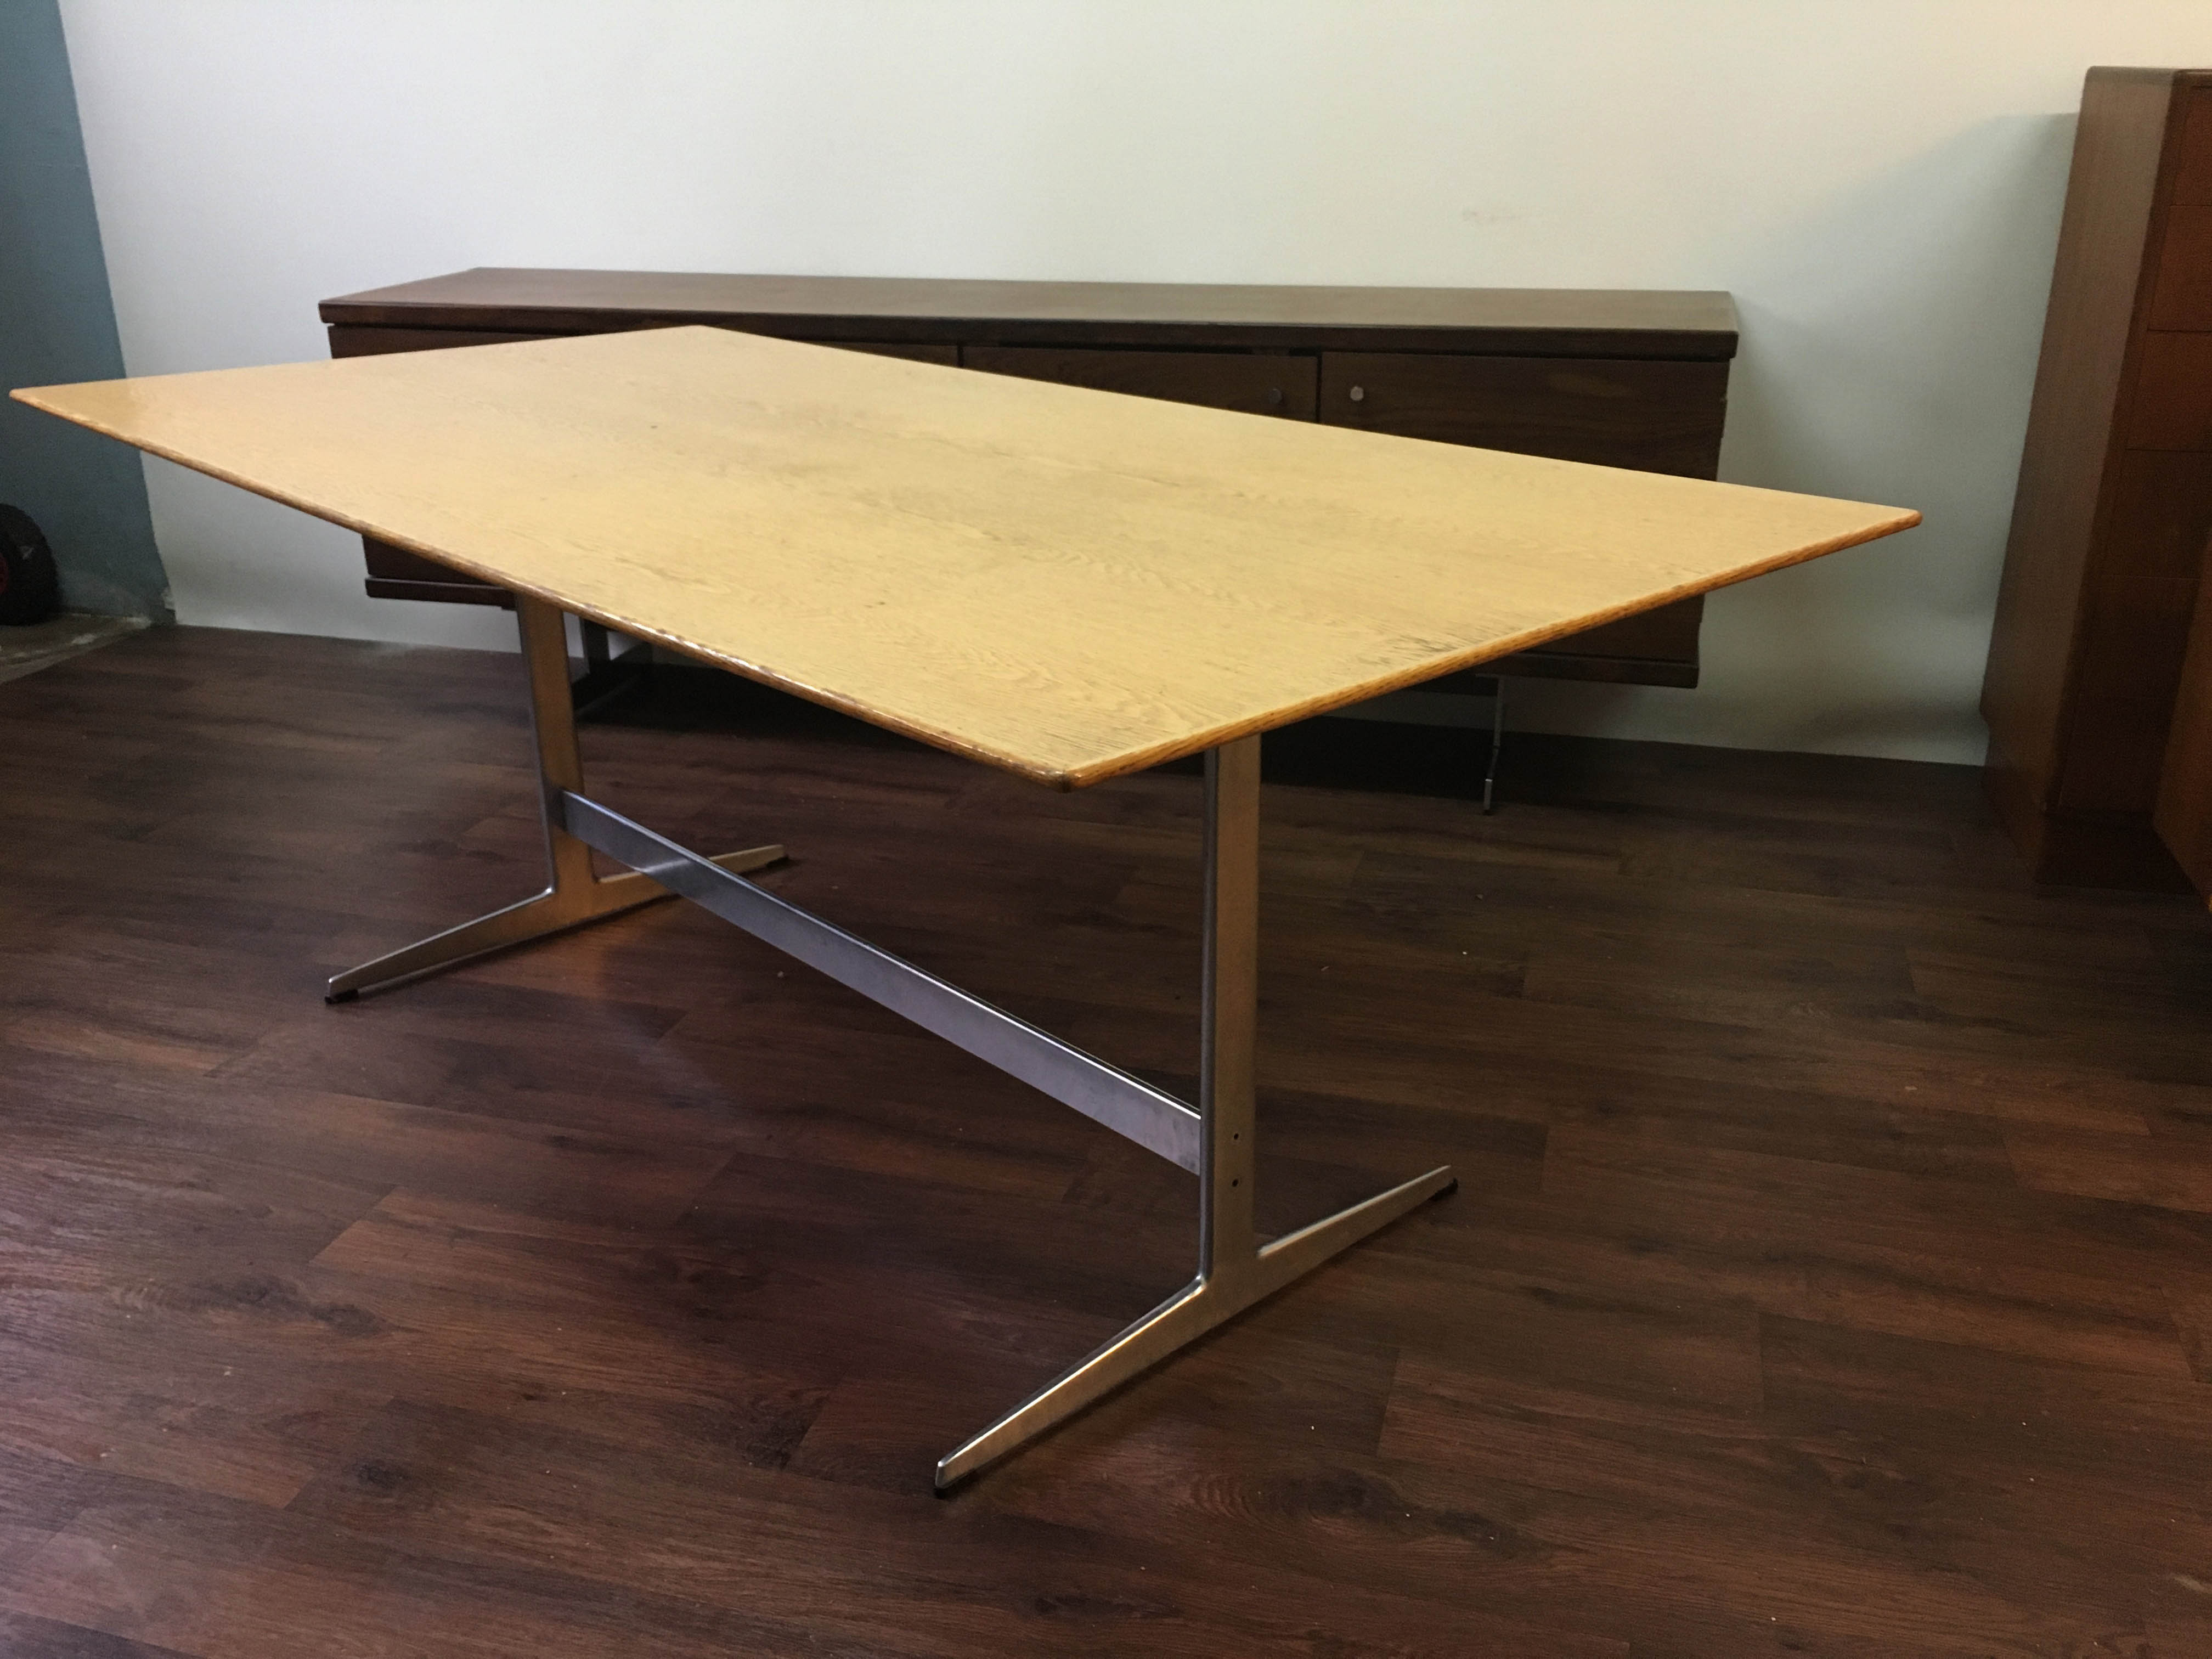 Shaker Table by Arne Jacobsen